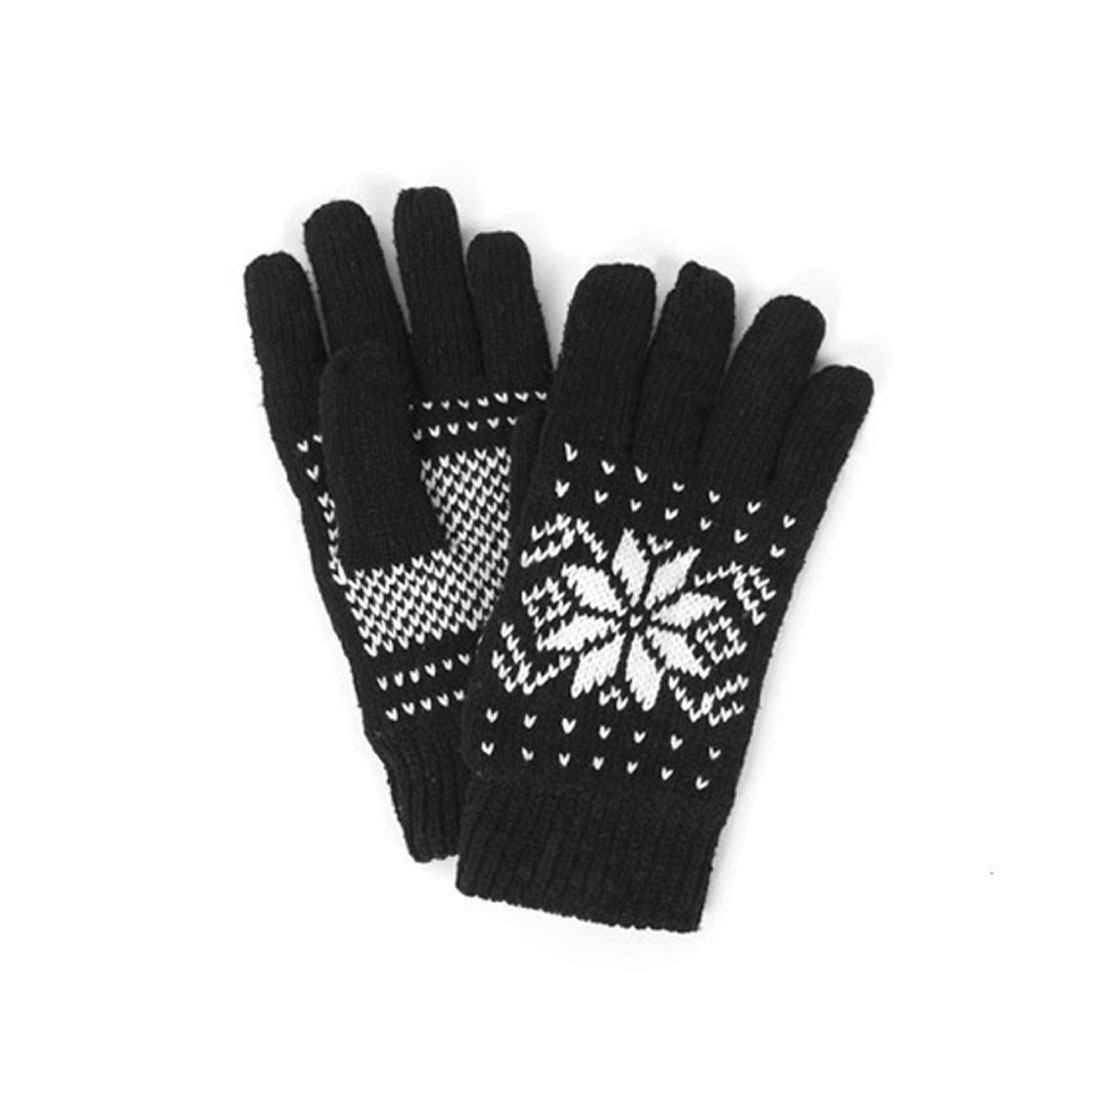 Mens Black Knitting Hands Warmers Leisure Full Finger Gloves